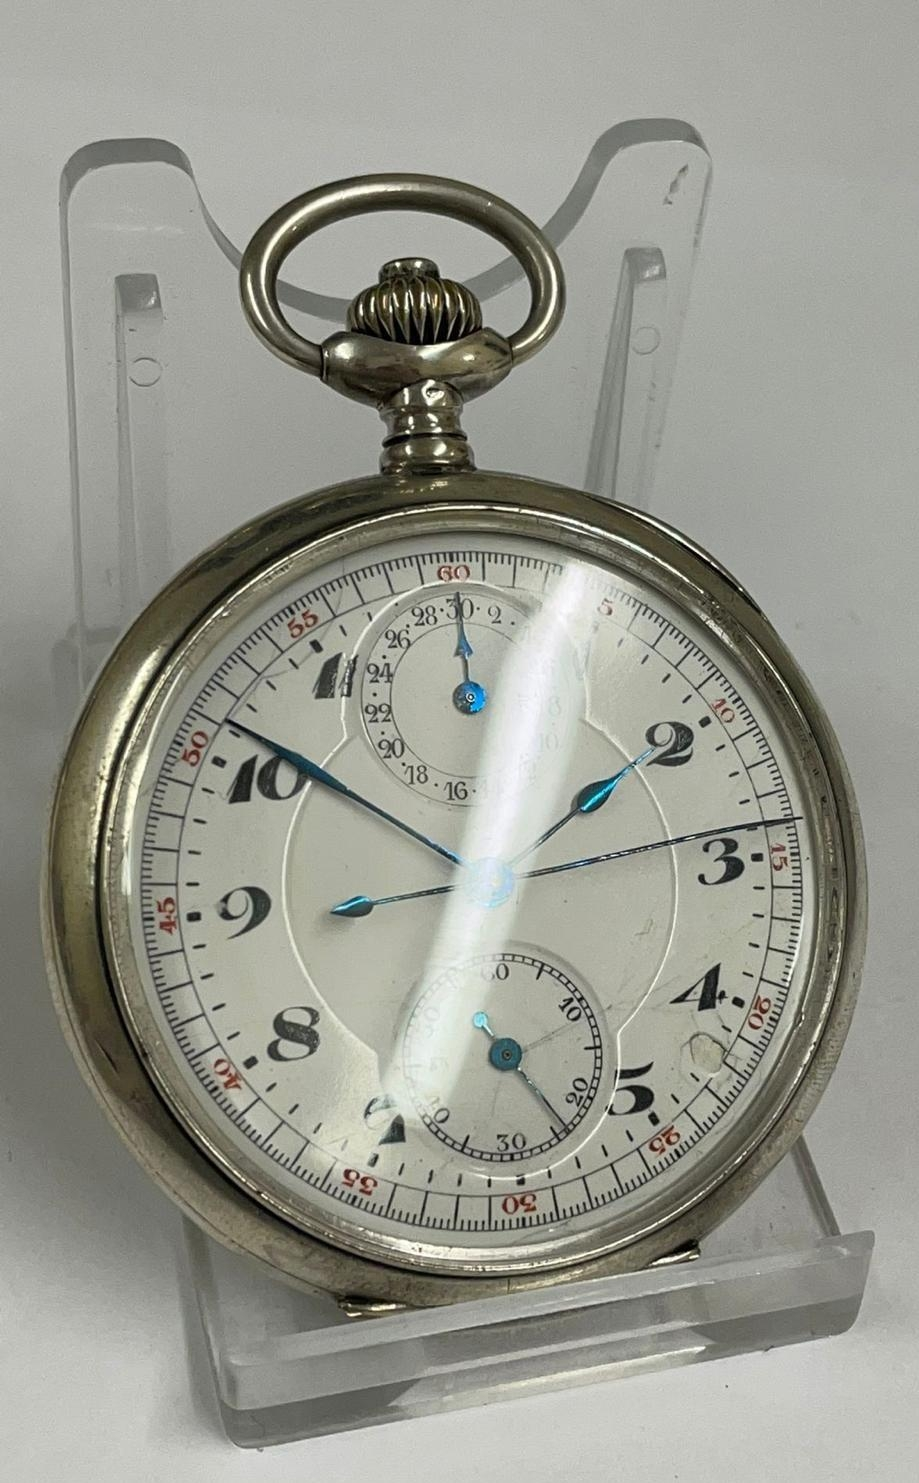 Vintage Silver Chronograph Pocket Watch. Working & Stop Function are working but sold with no